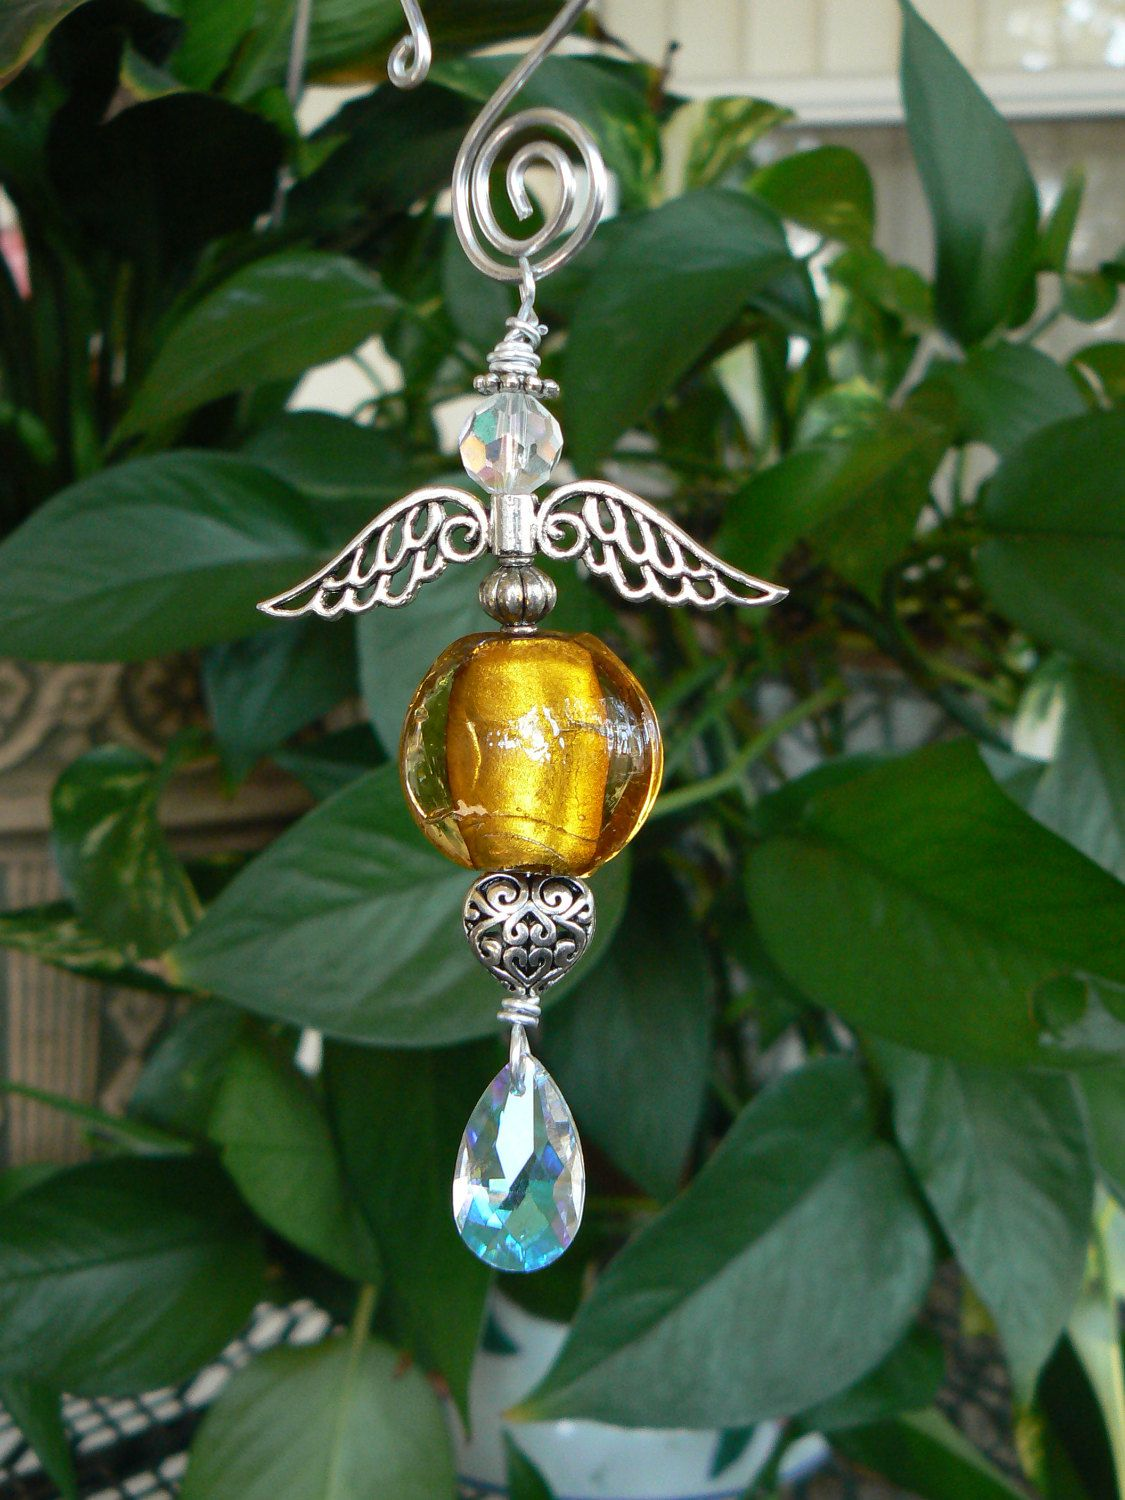 Butterscotch puffed coin hand blown glass hanging angel by LindaGillottiDesigns on Etsy